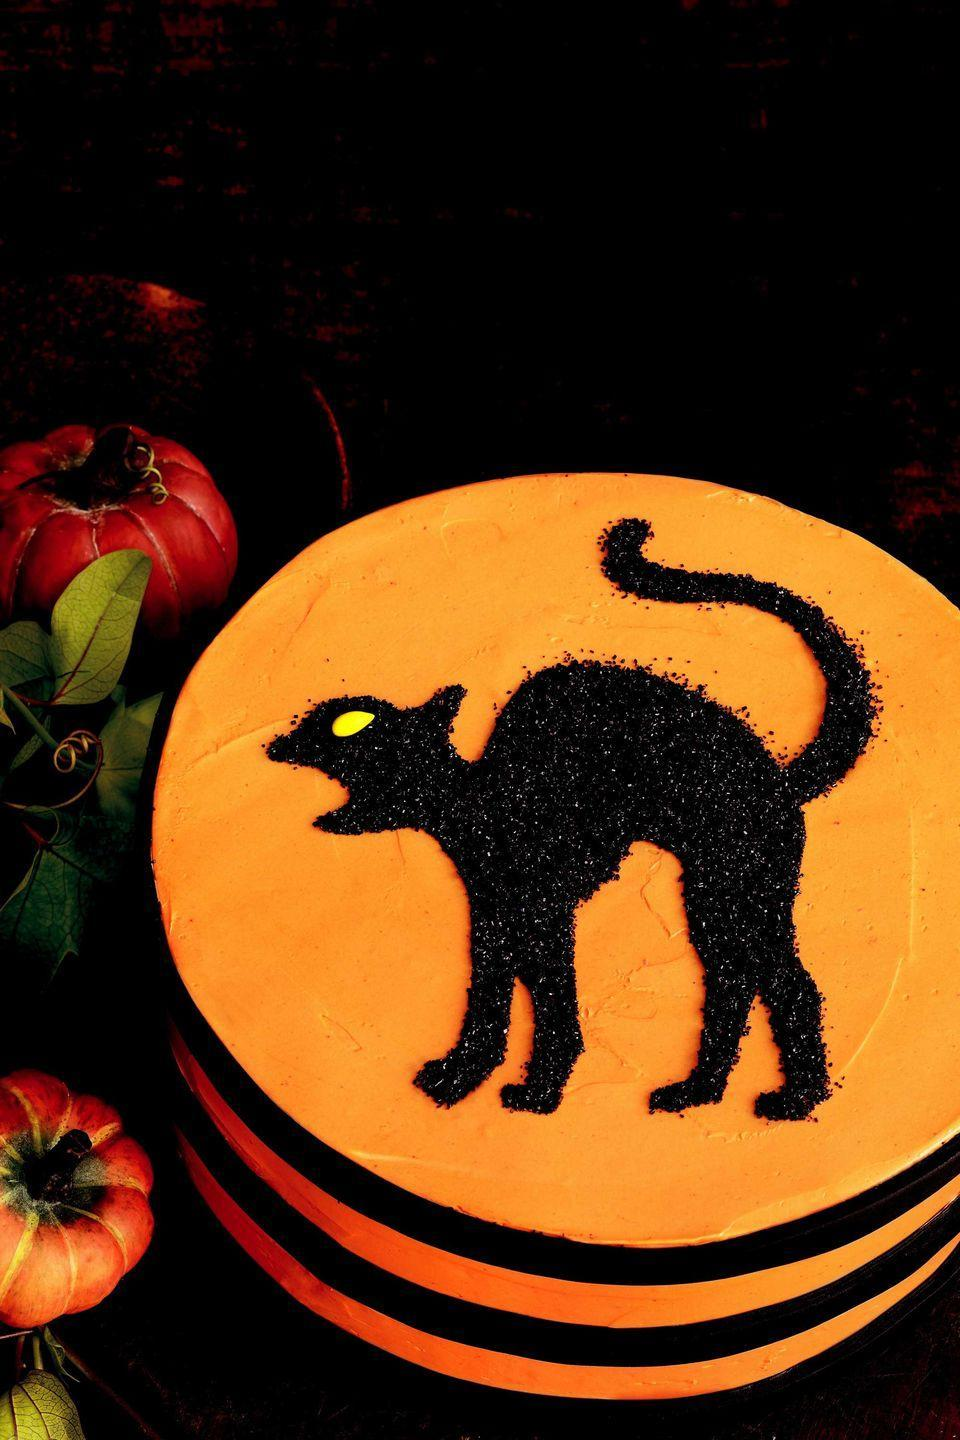 """<p>Even the most superstitious guest will enjoy crossing paths with this black cat, crafted from sparkling sugar.</p><p><strong>To assemble</strong> the stenciled layer cake, fill and frost two 8-inch-round layers with your favorite icing, leaving a smooth surface. Roll out black fondant, into a 1/8-inch-thick sheet, and with a ruler as a guide, cut three strips long enough to wrap around the cake's circumference; adhere, using extra dabs of icing, if needed.</p><p><strong>Re-create this black cat</strong> silhouette by downloading our super-simple stencil. Chill the cake, then immediately before serving, center the stencil on top. Fill in the stencil with black sanding sugar, leaving the edges a little messy for a spooky effect. Add a candy-coated sunflower seed (find a variety at <a href=""""http://www.sunflowerfoodcompany.com/"""" rel=""""nofollow noopener"""" target=""""_blank"""" data-ylk=""""slk:sunflowerfoodcompany.com"""" class=""""link rapid-noclick-resp"""">sunflowerfoodcompany.com</a>) or half a yellow M&M for the cat's eye.</p><p><b><a href=""""https://www.countryliving.com/diy-crafts/a2431/scary-cat-stencil-1008/"""" rel=""""nofollow noopener"""" target=""""_blank"""" data-ylk=""""slk:Get black cat stencil"""" class=""""link rapid-noclick-resp"""">Get black cat stencil</a>.</b> </p>"""